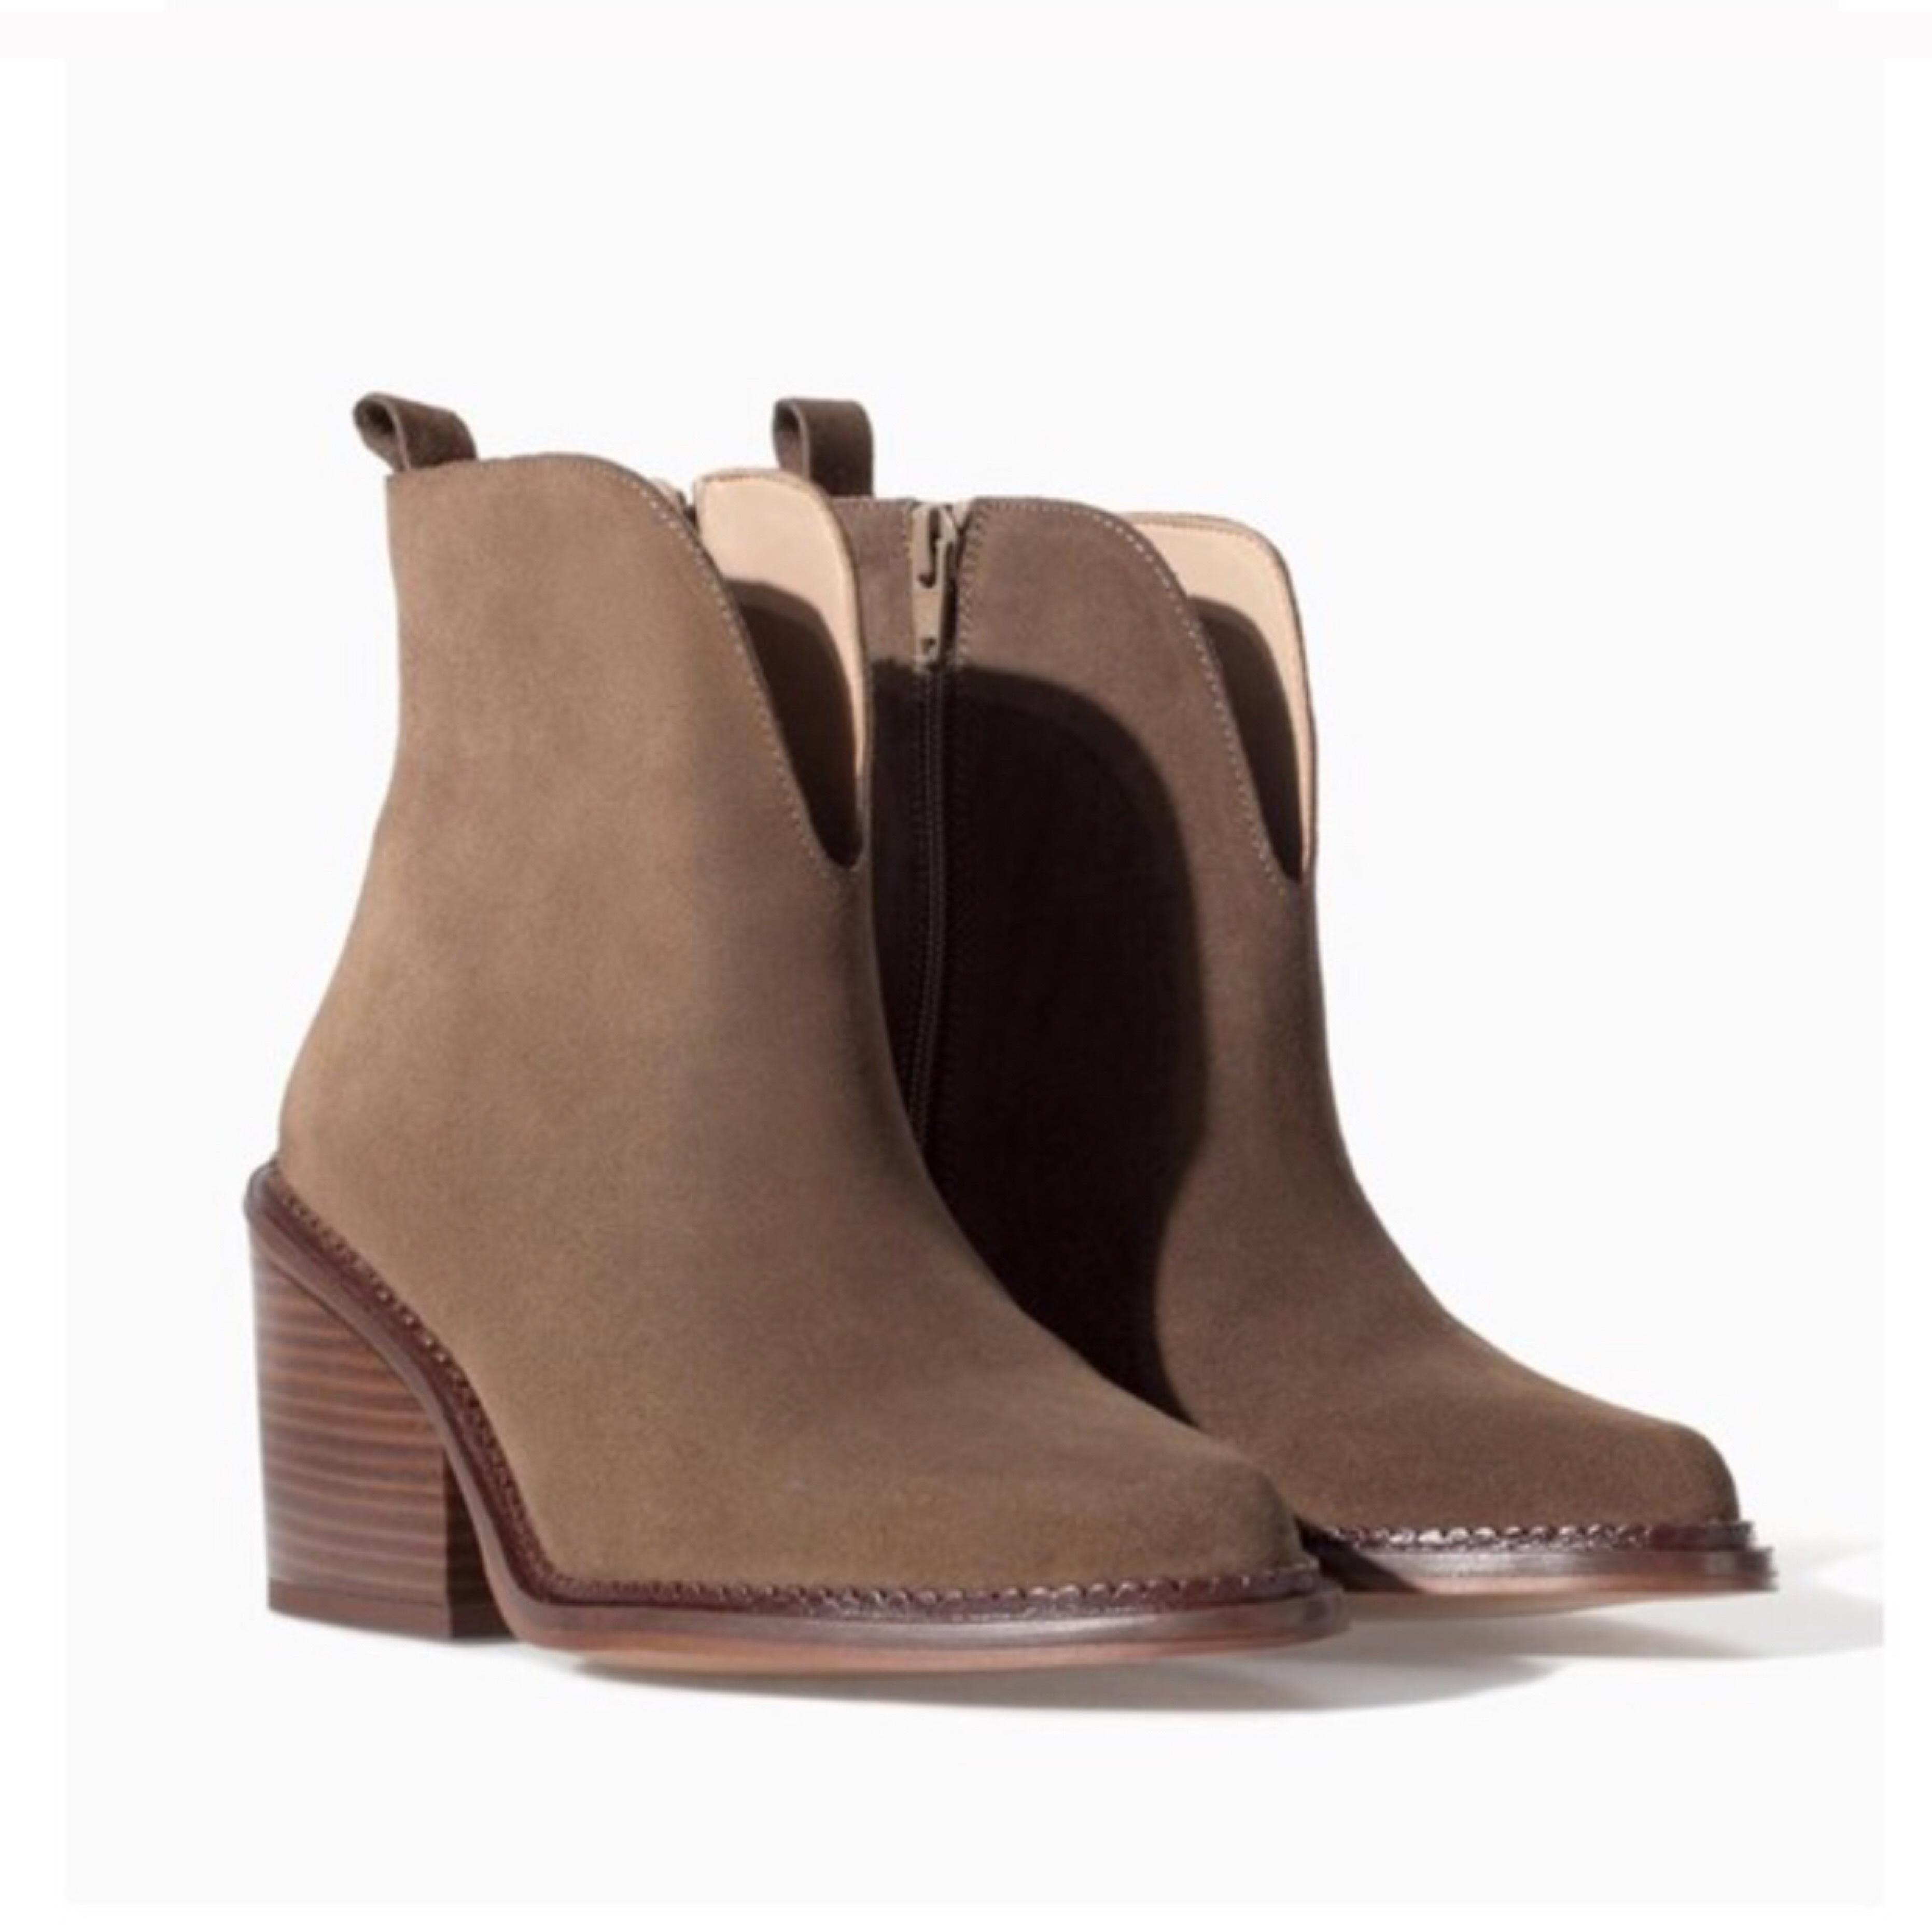 zara bottes / chaussures taille taille taille ue 38 (environ 8) ordinaires (m, b) 15bc96